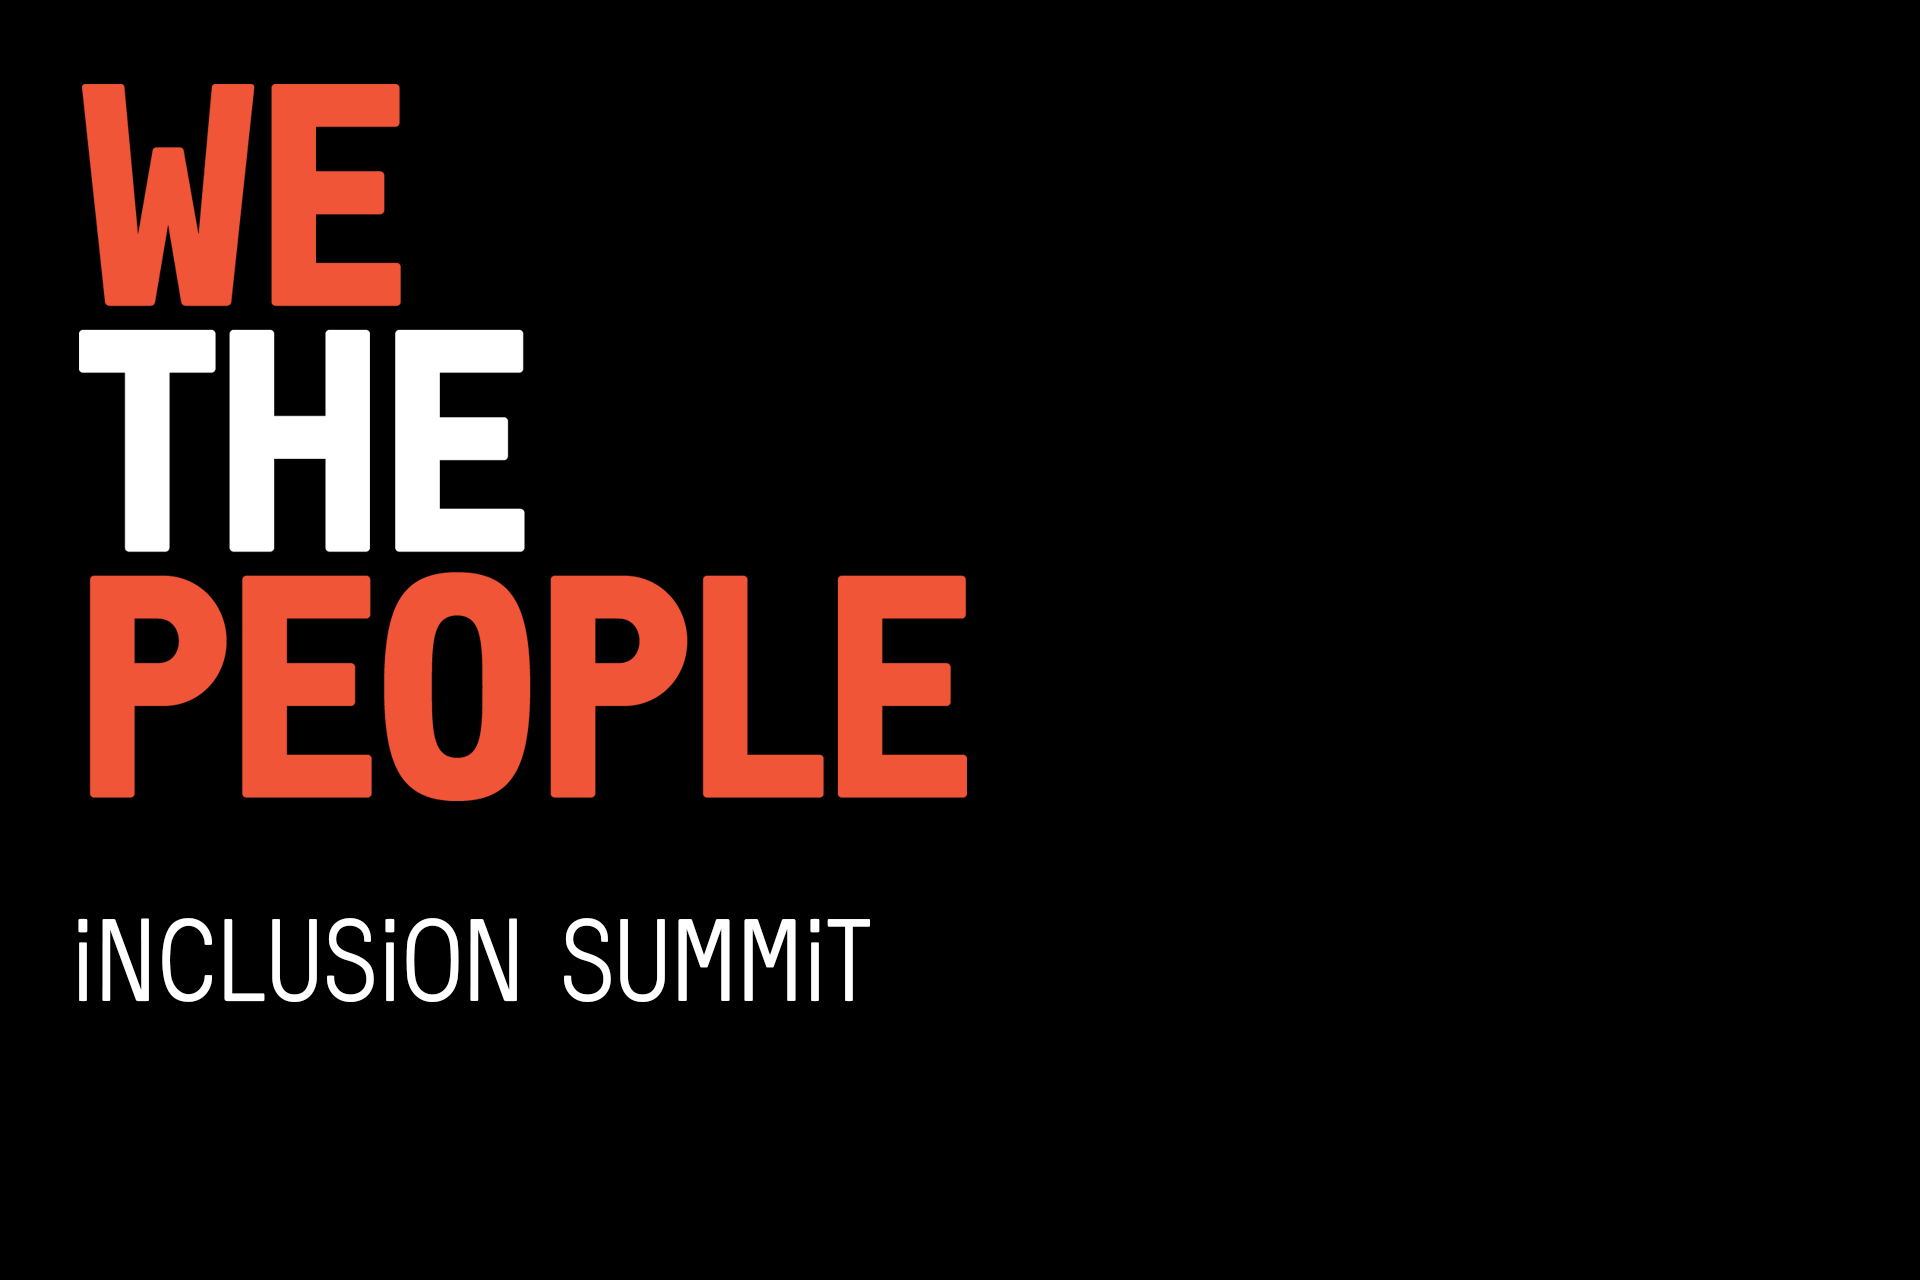 We the People Inclusion Summit